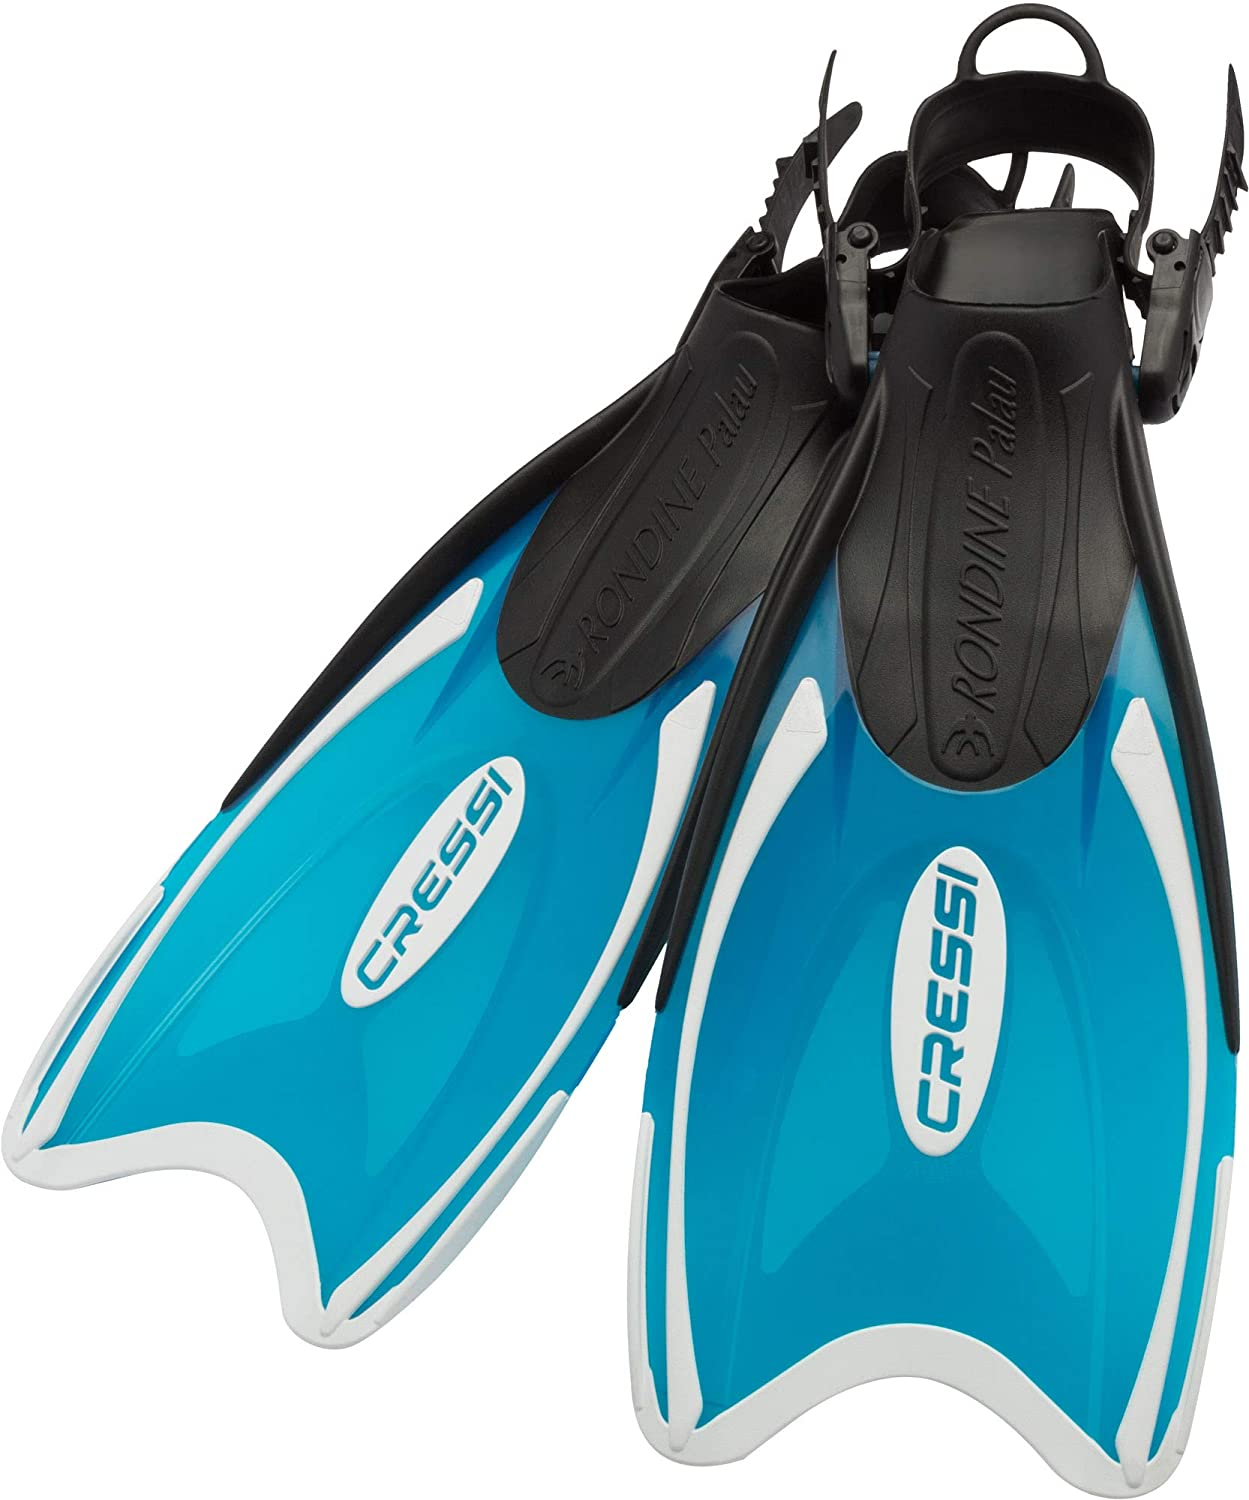 Mini Palau: Made in Italy Light and Short: Ideal for Traveling Cressi Kids Snorkeling Open Heel Fins with Adjustable Strap Perfect for Young Swimmers